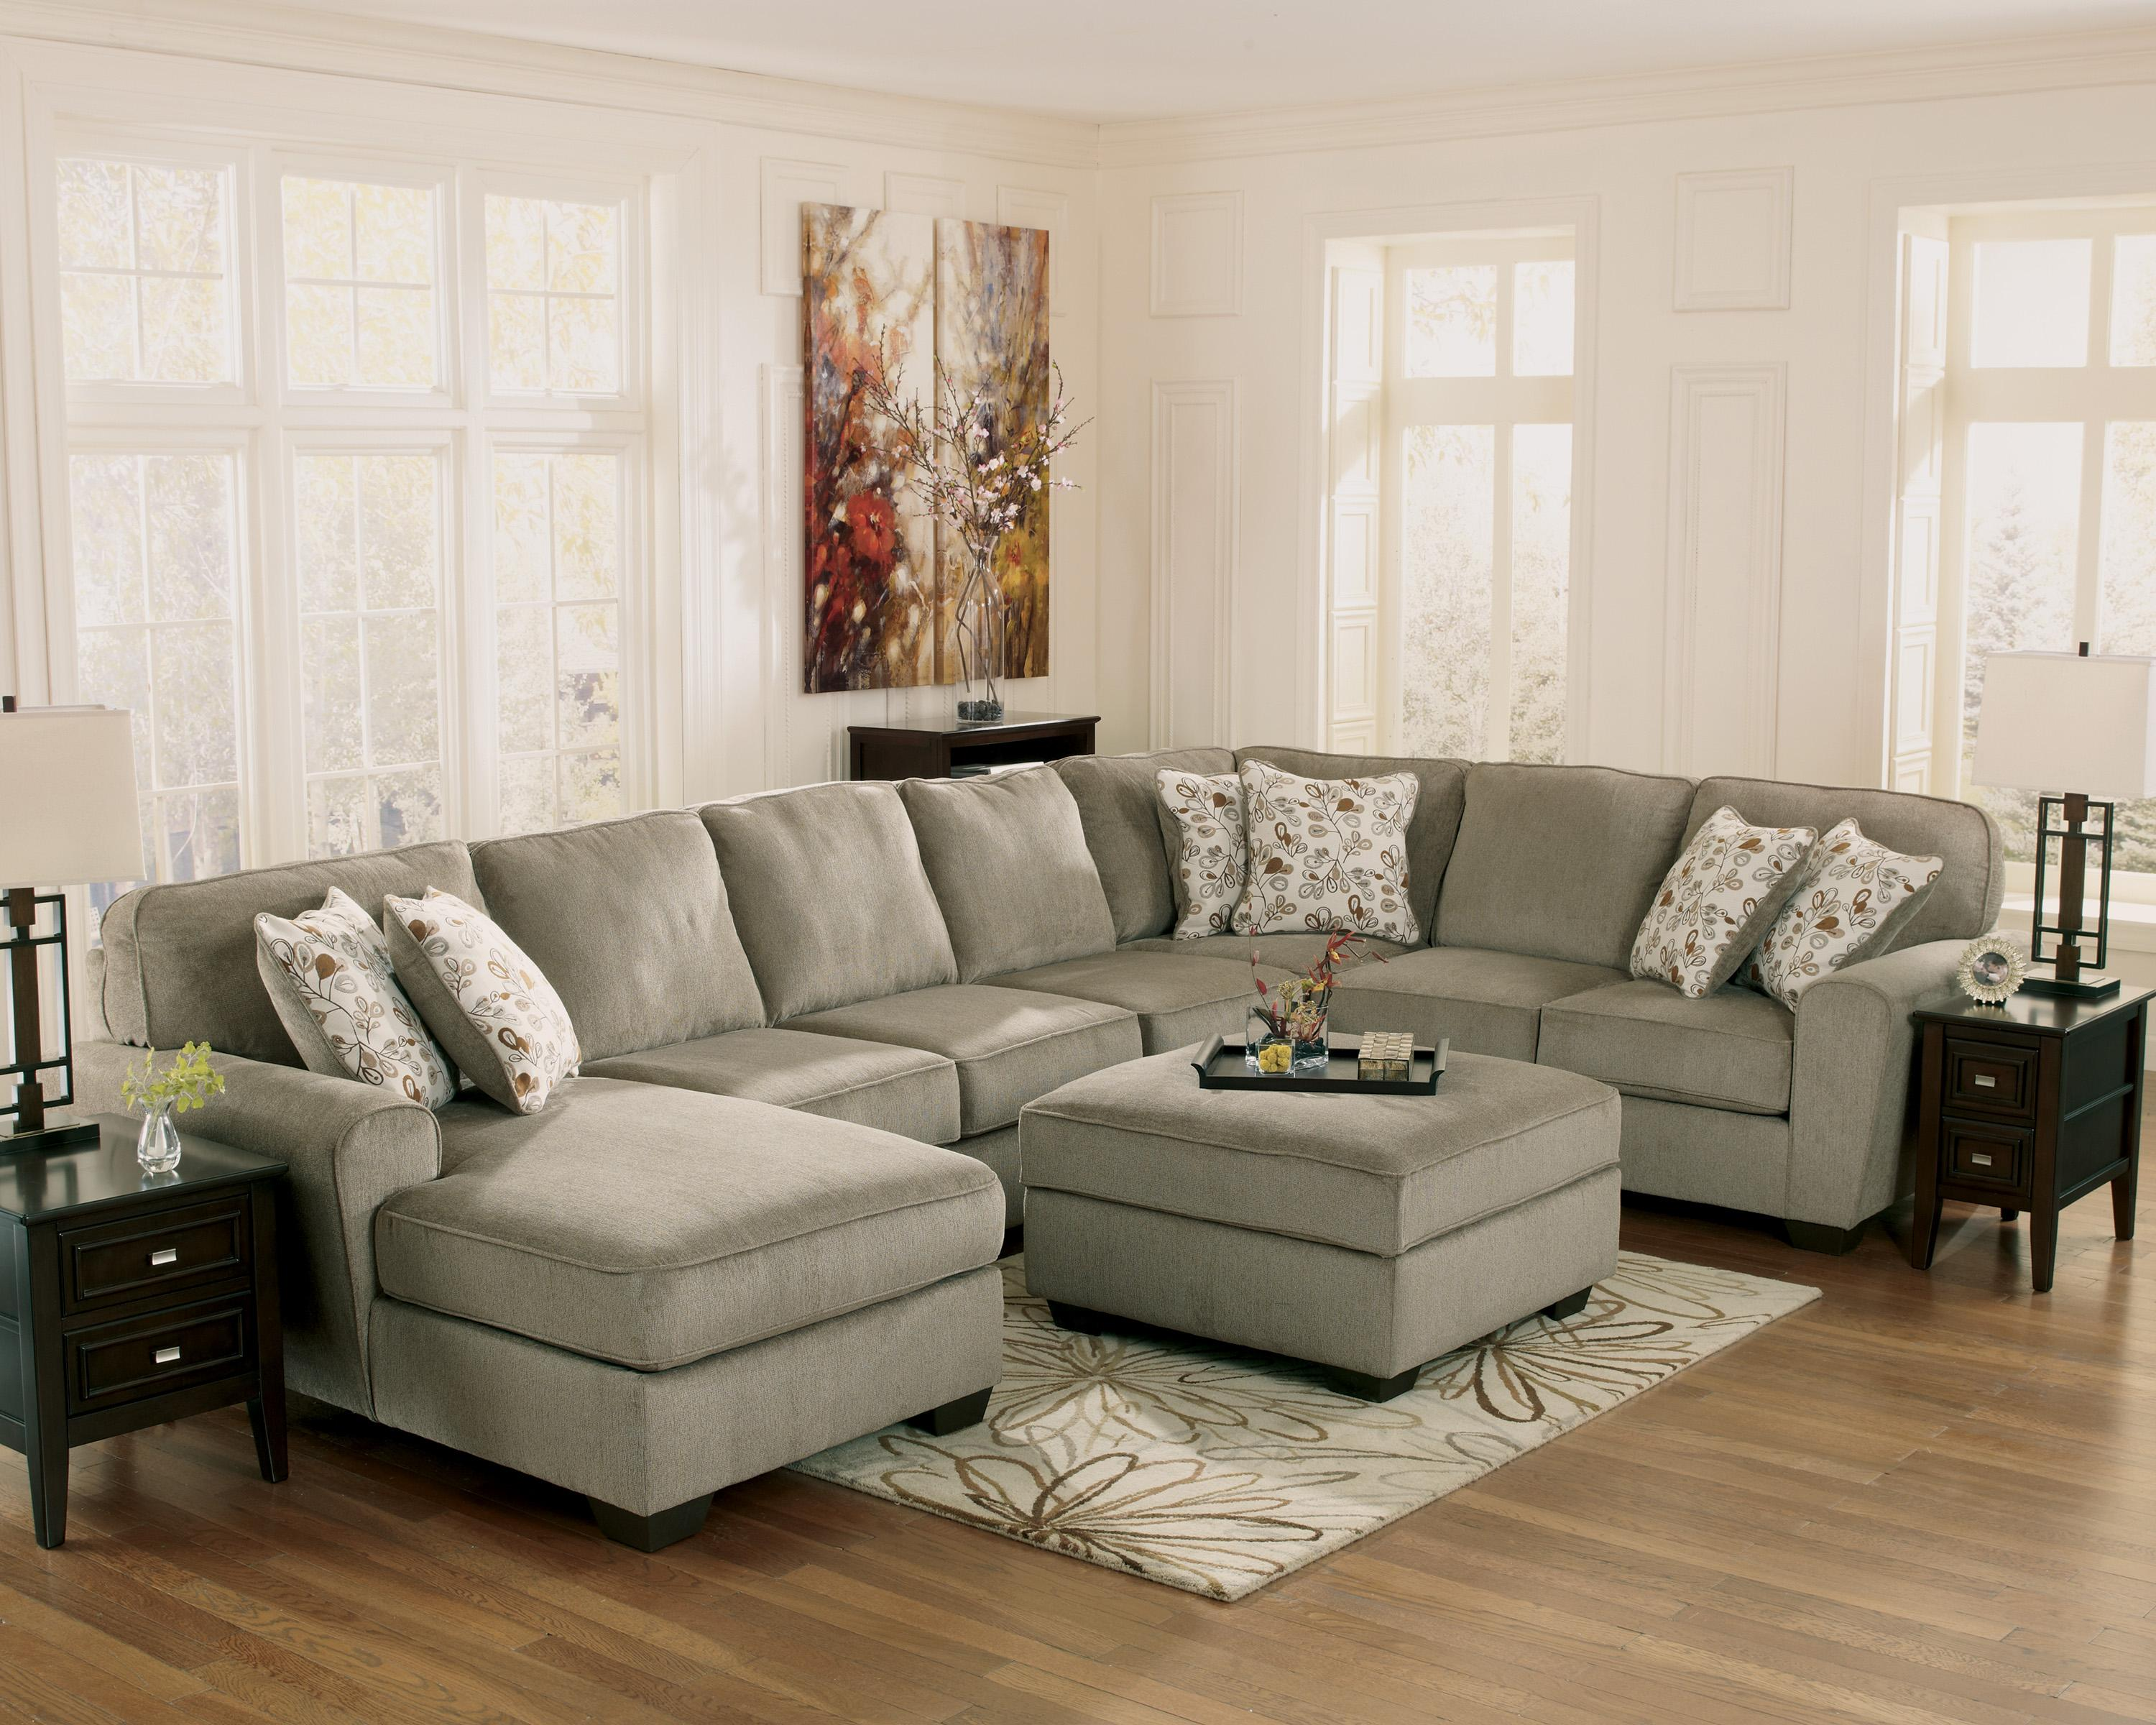 Patina 4 Piece Small Sectional with Right Cuddler Rotmans Sofa